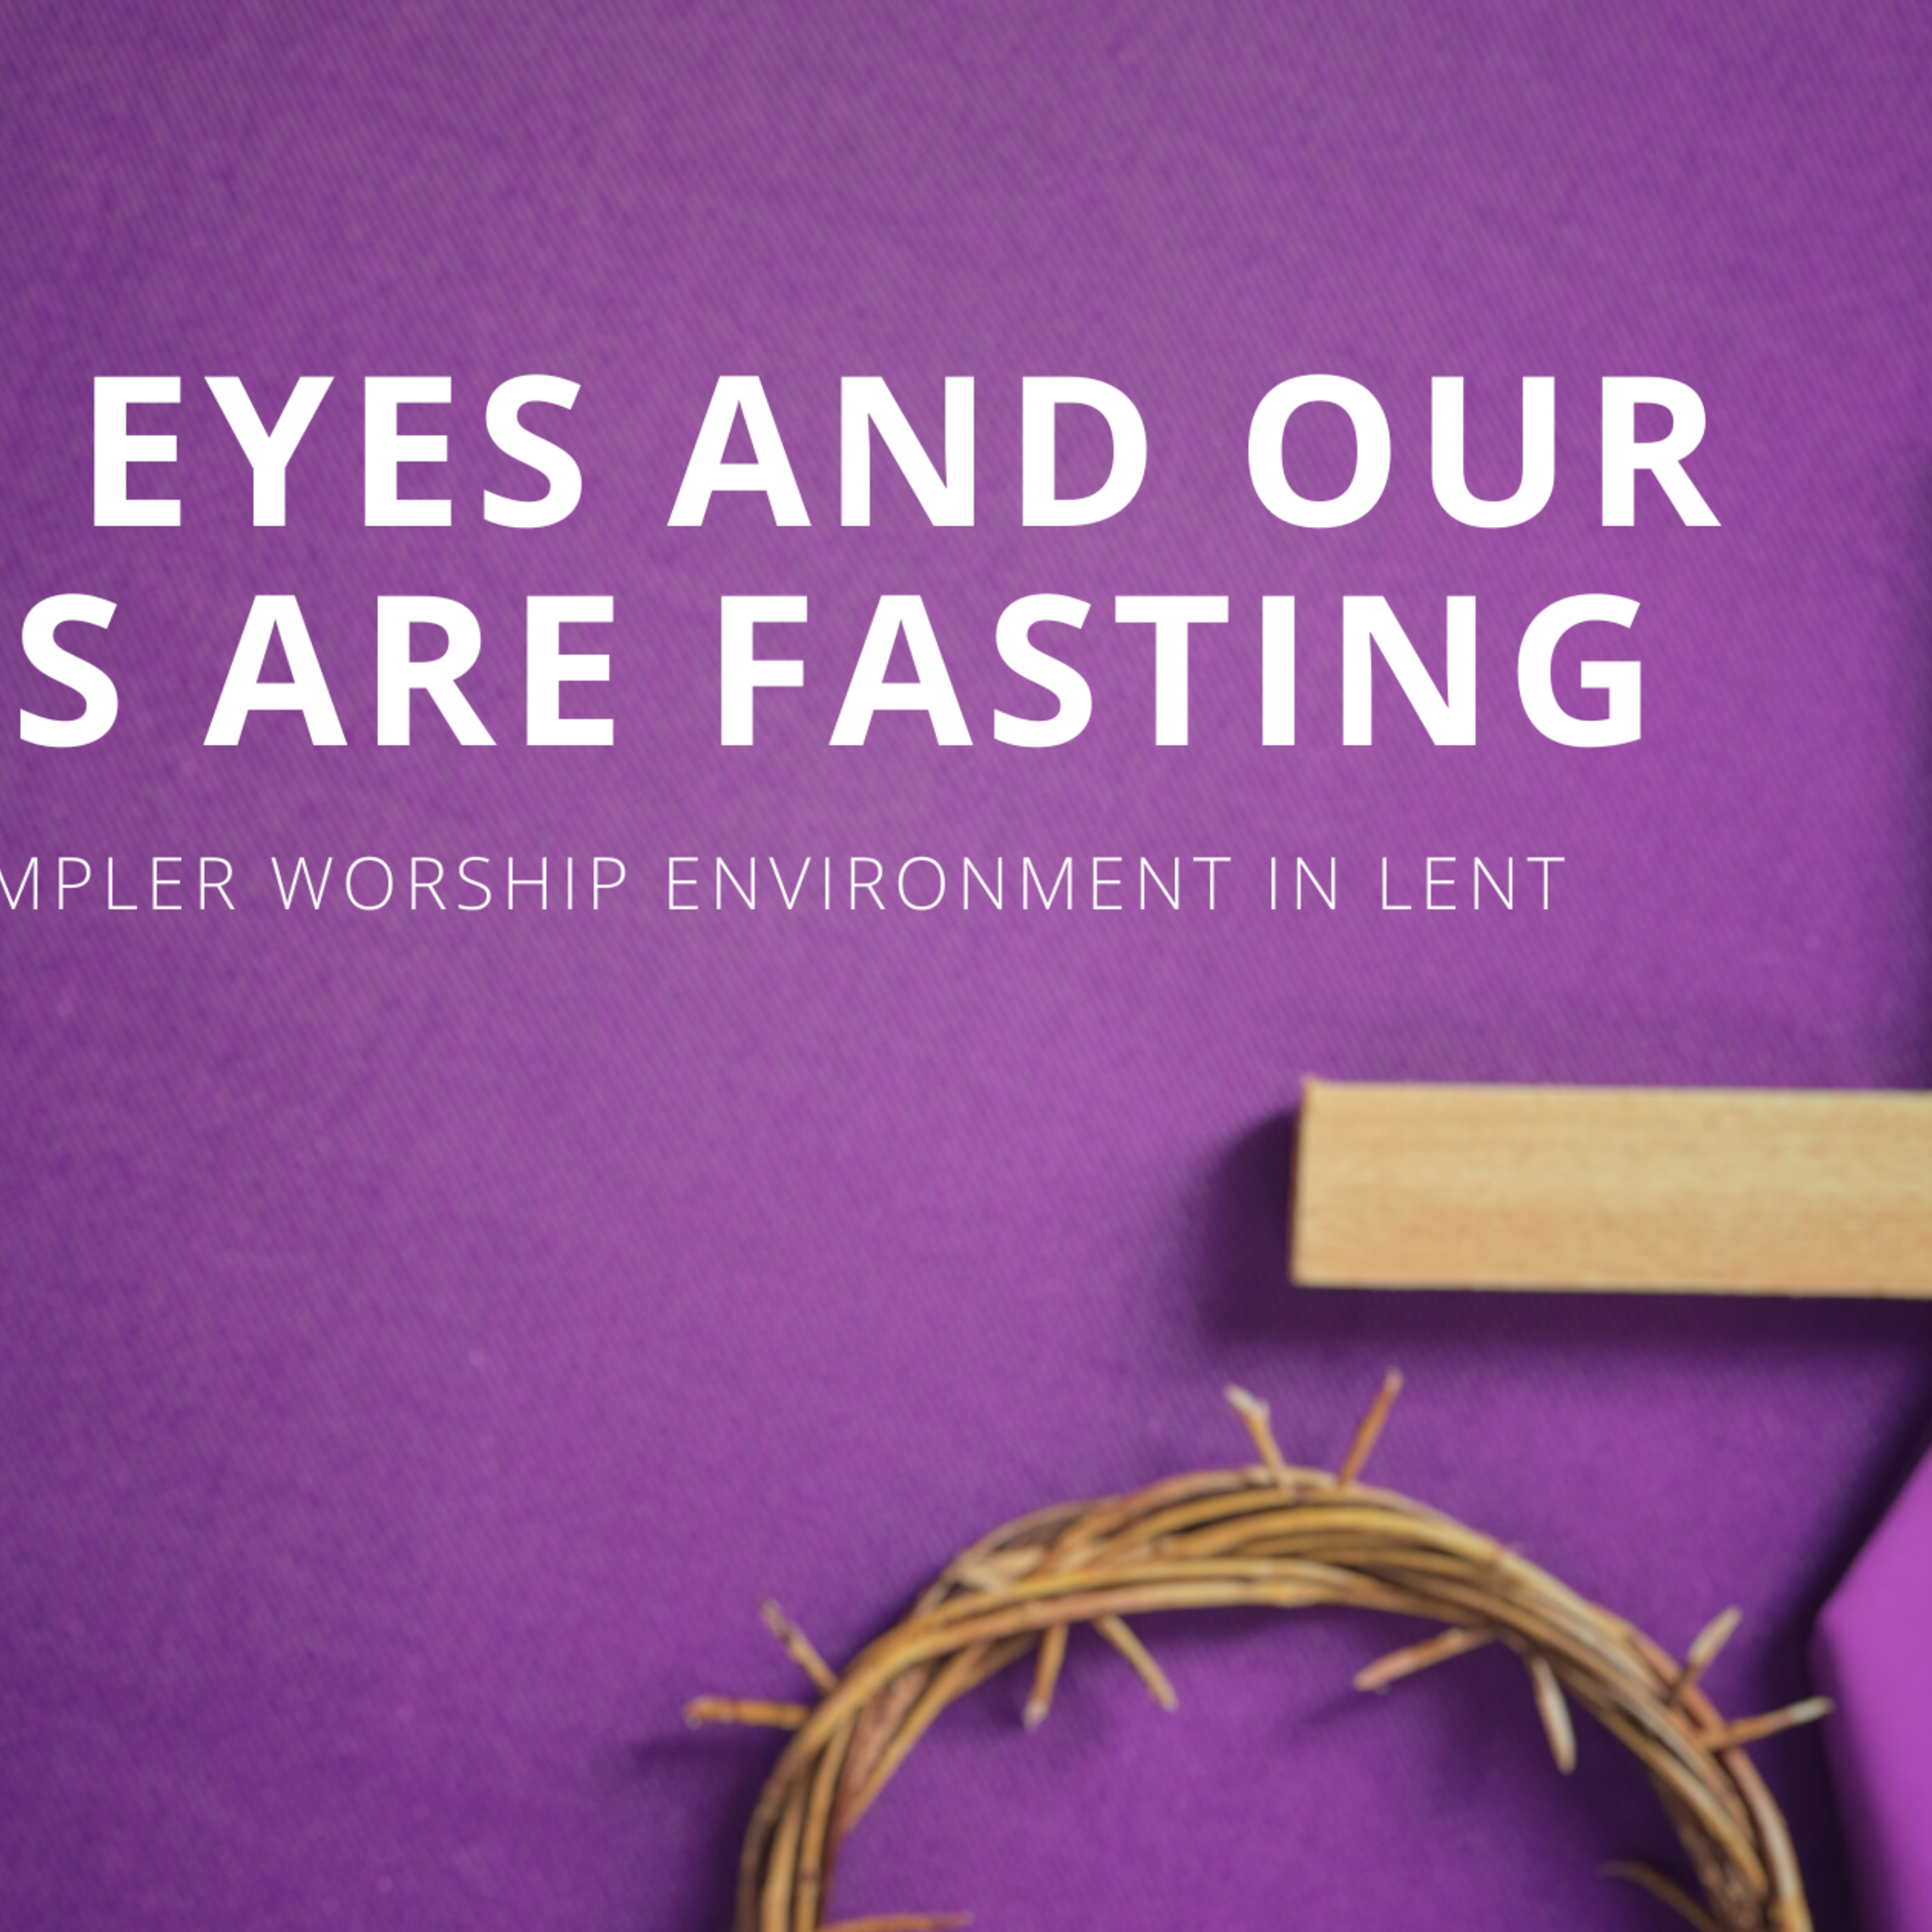 Our Eyes And Our Ears Are Fasting